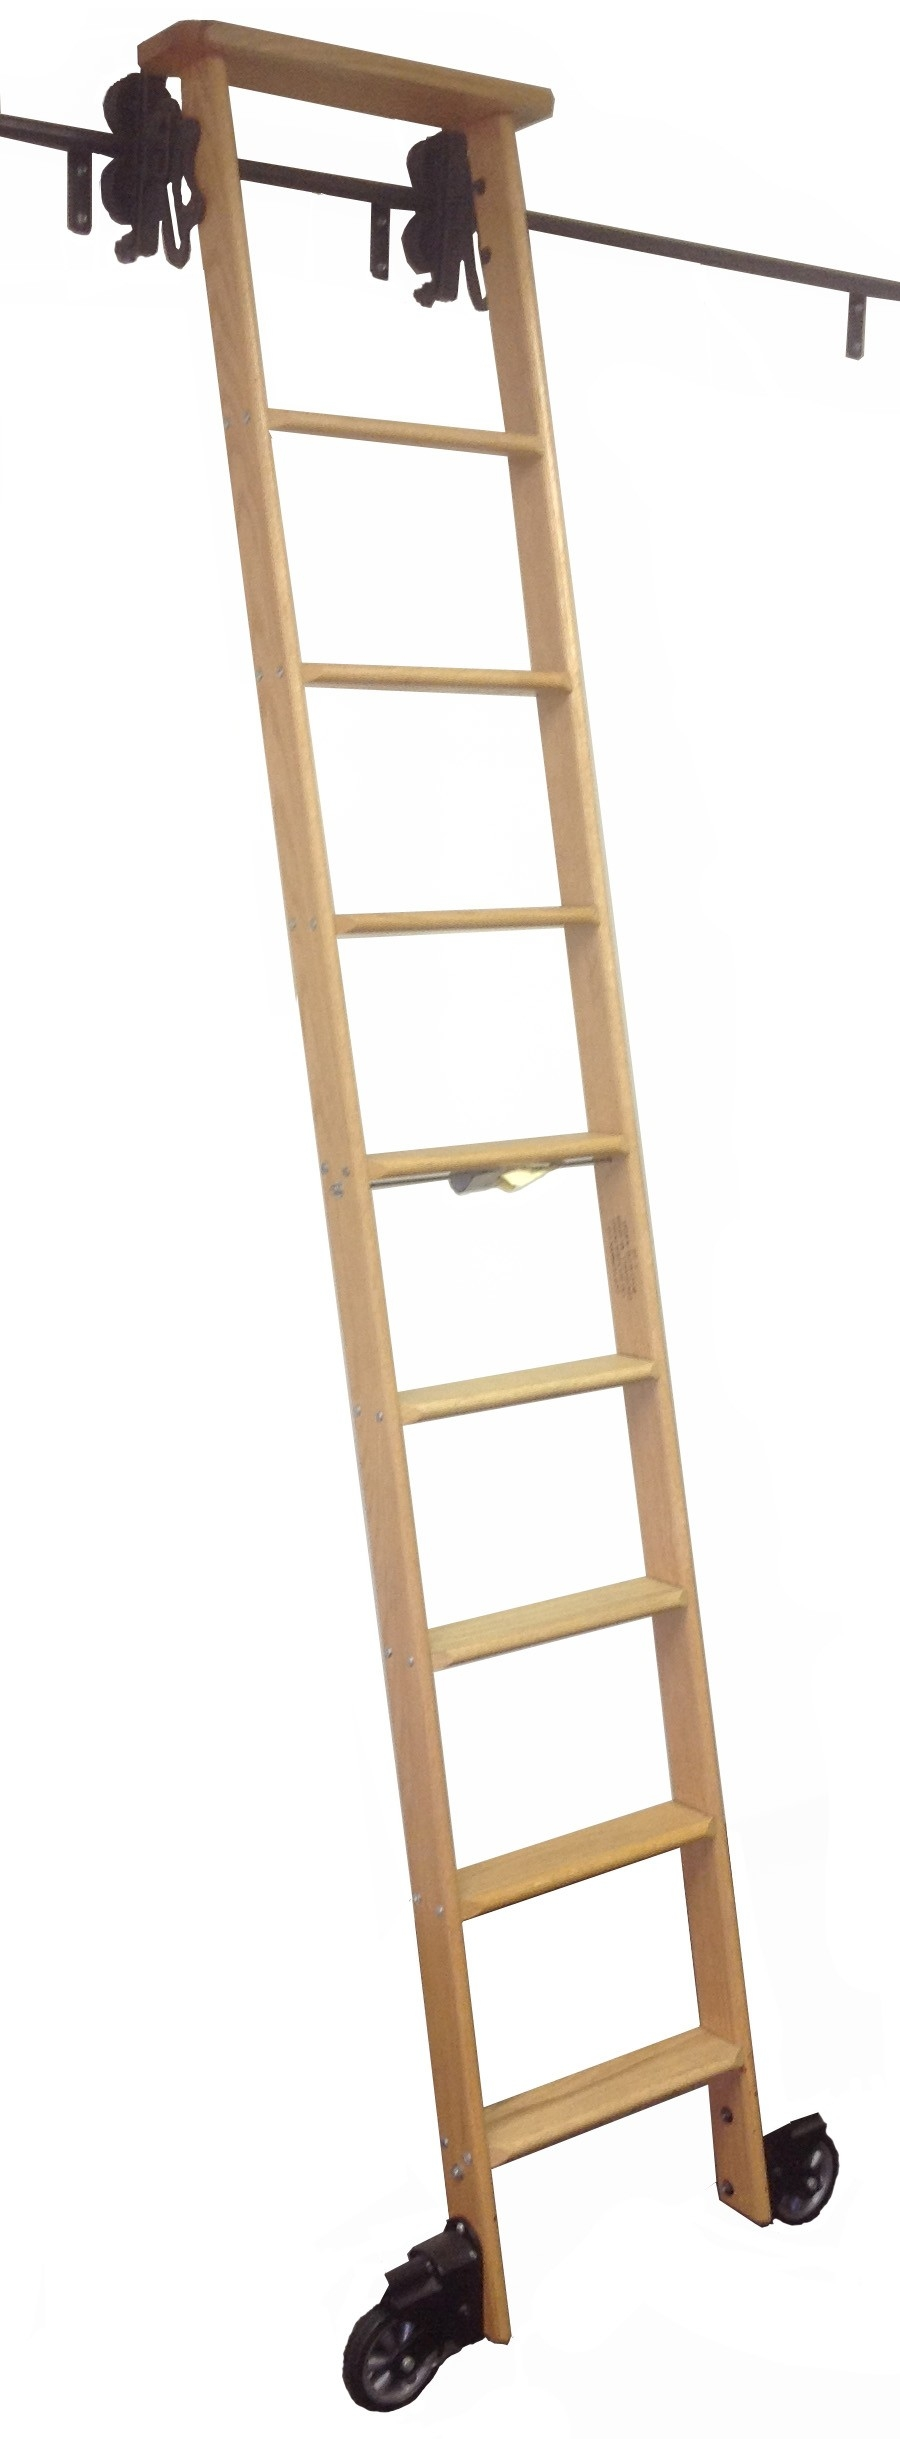 Black Finish Rolling Library Ladder Kits Intended For Library Ladder (View 3 of 15)